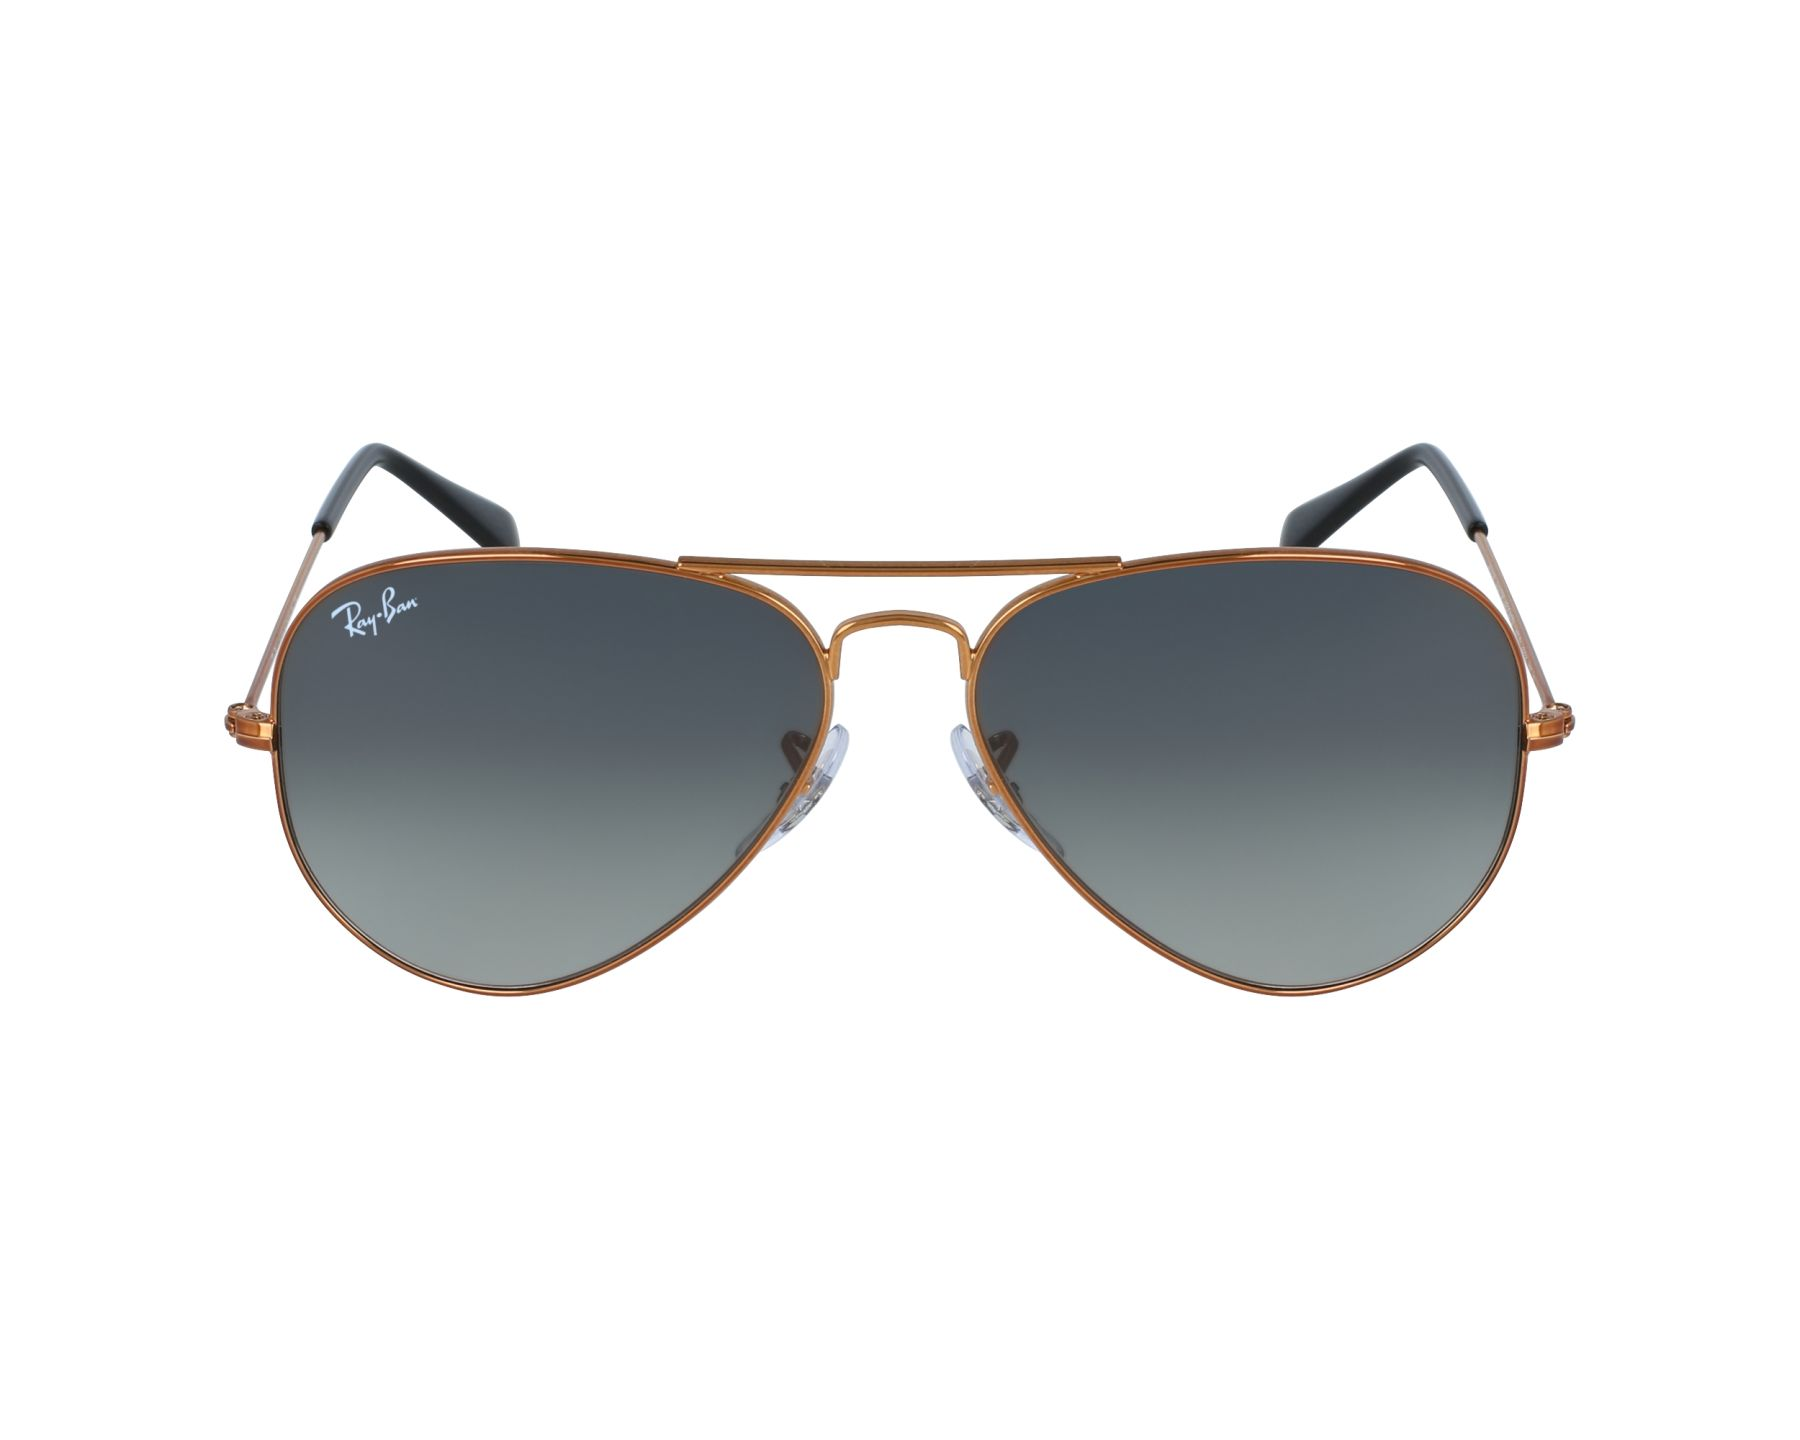 11f67a7a95 Sunglasses Ray-Ban RB-3025 197 71 55-14 Bronze profile view